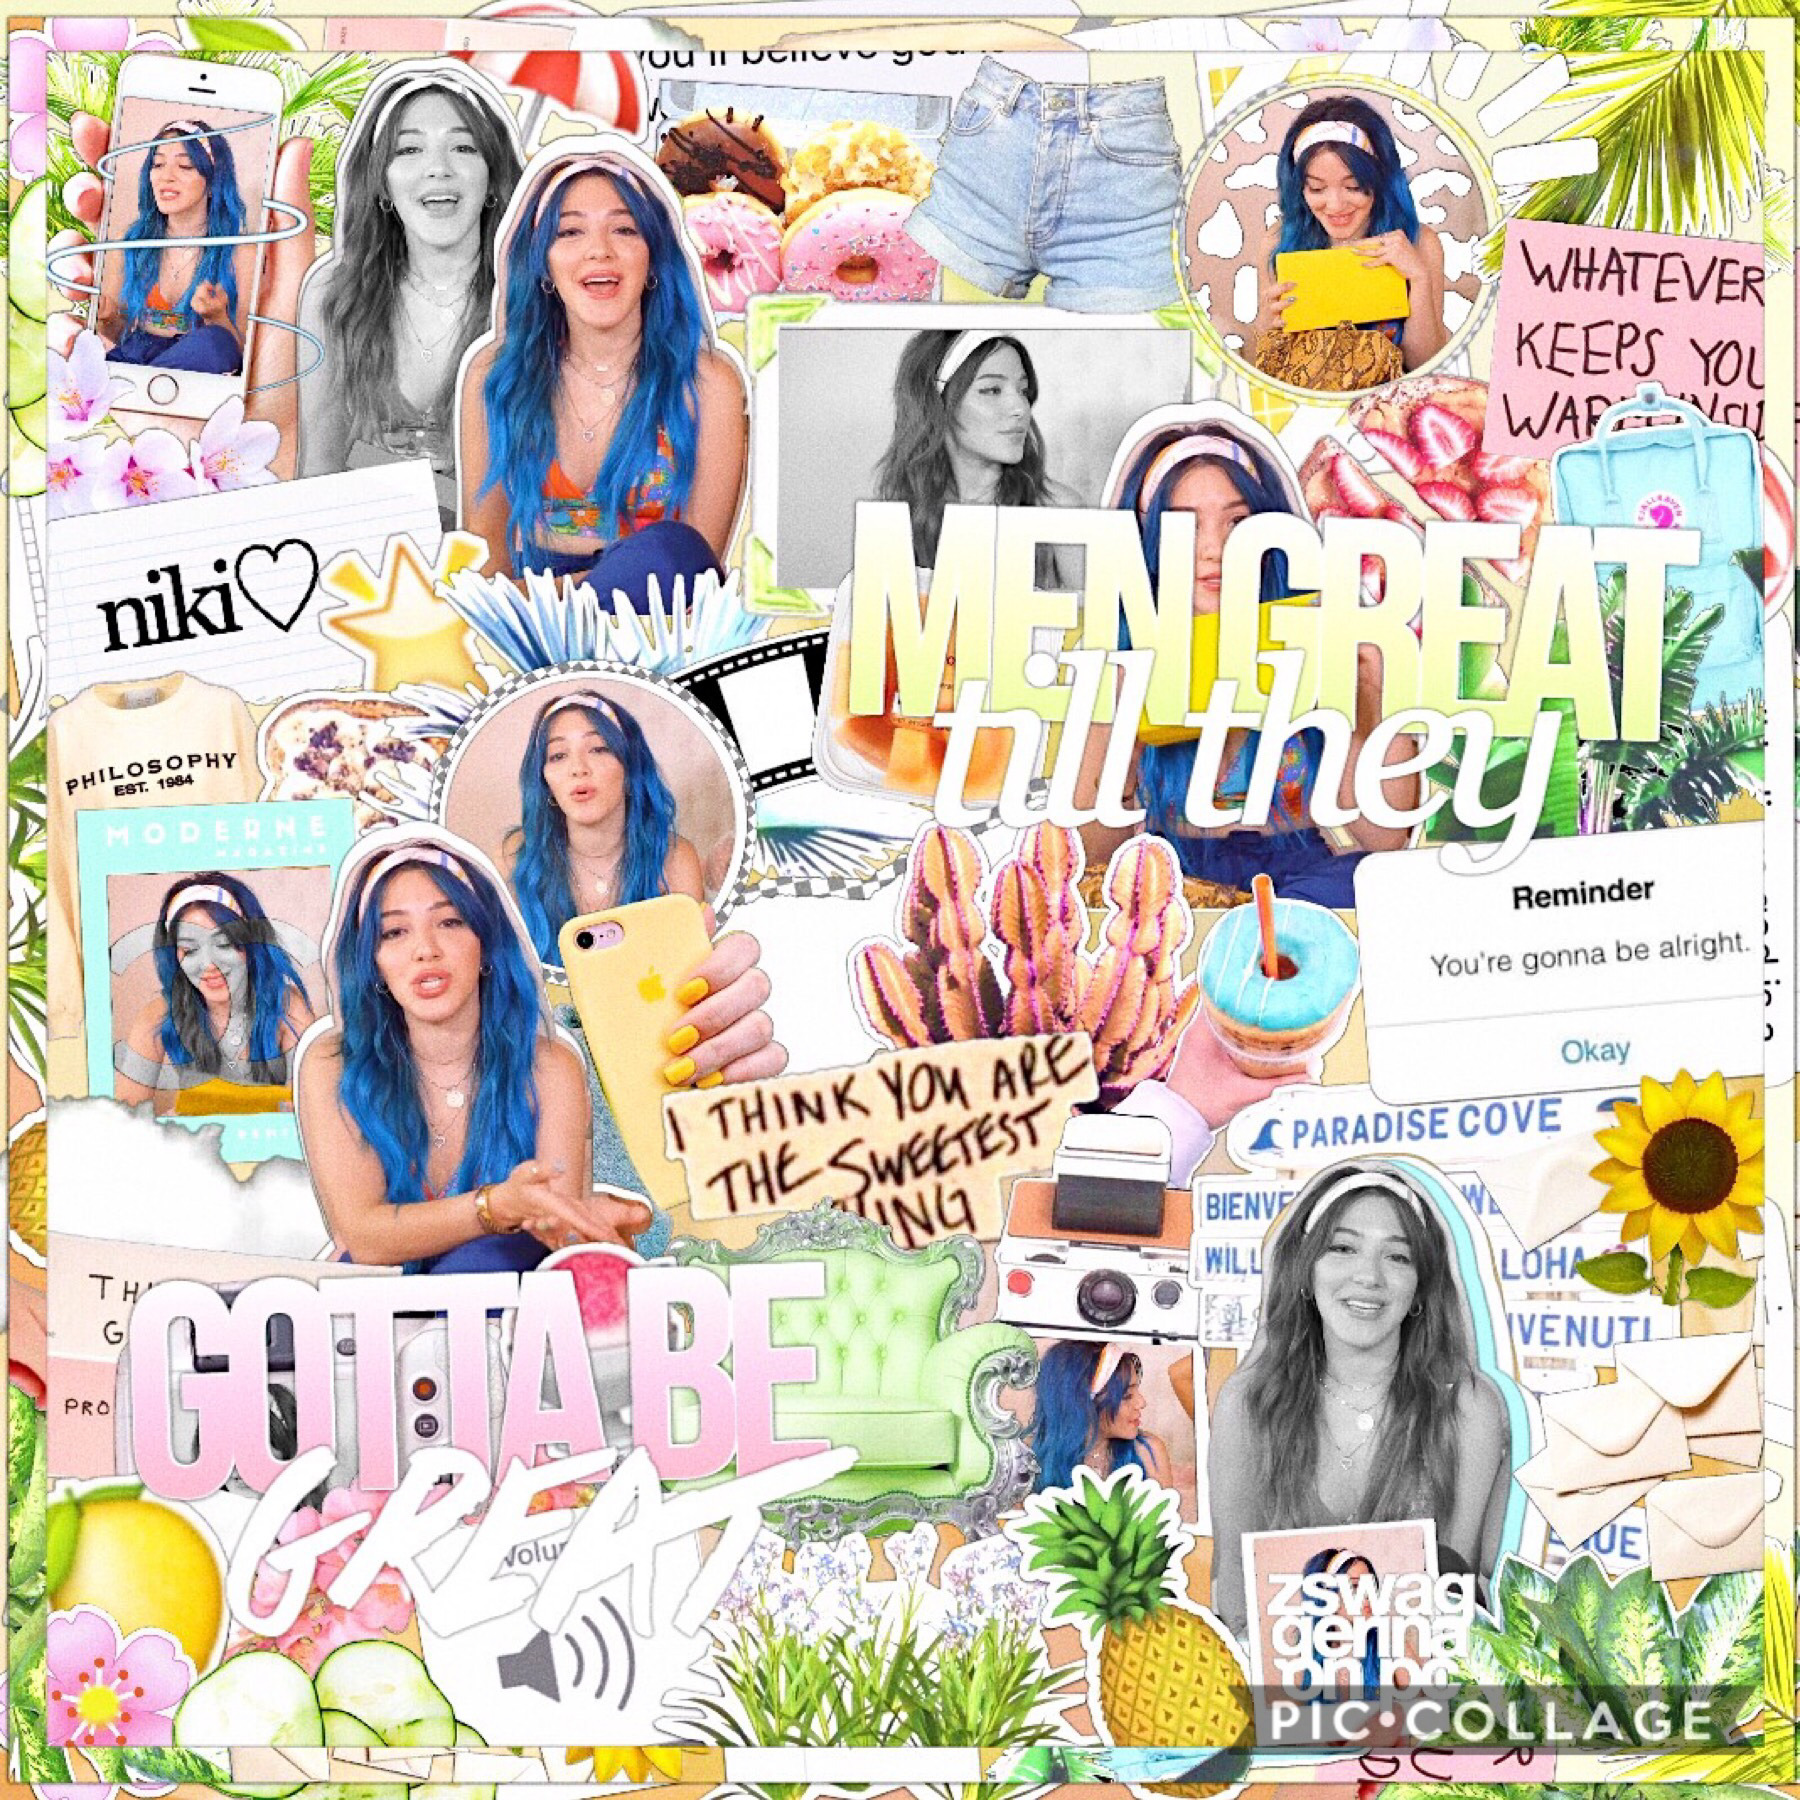 I feel like I always edit niki lol 🦋💛 also if you didn't know I have a spam account @kellithinkshescool ! follow me there for more kelli stuff, not that you should care 😂